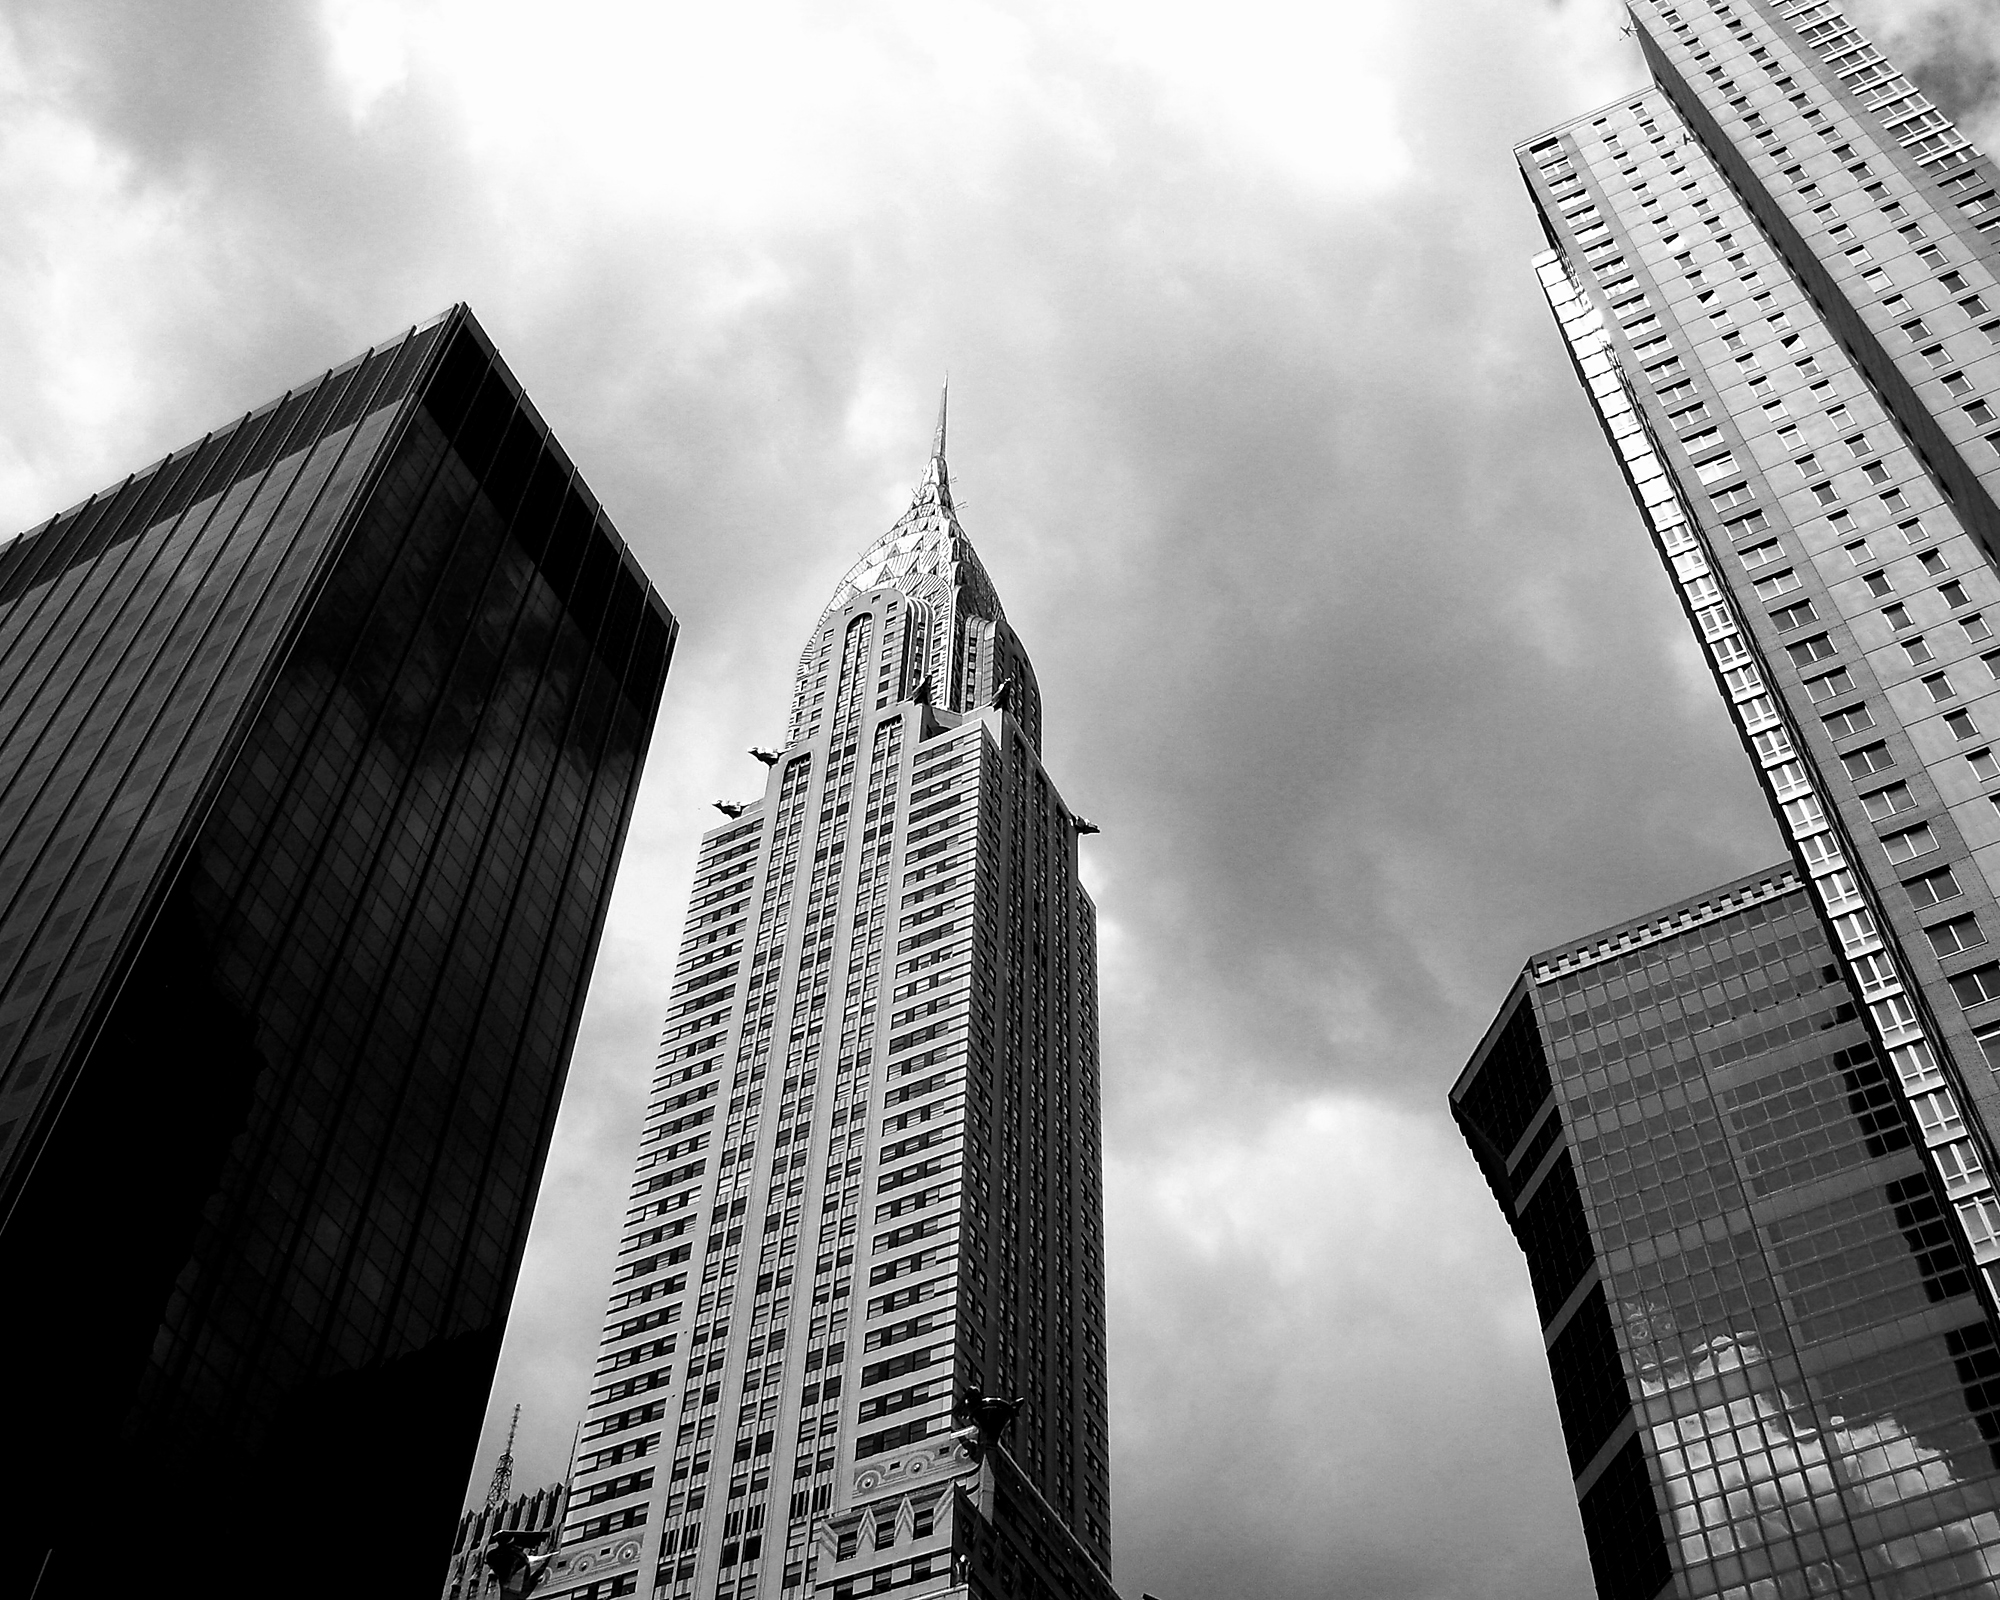 Chrysler Building Wikipedia: Empire State, Chrysler Building And Architectural Drawings